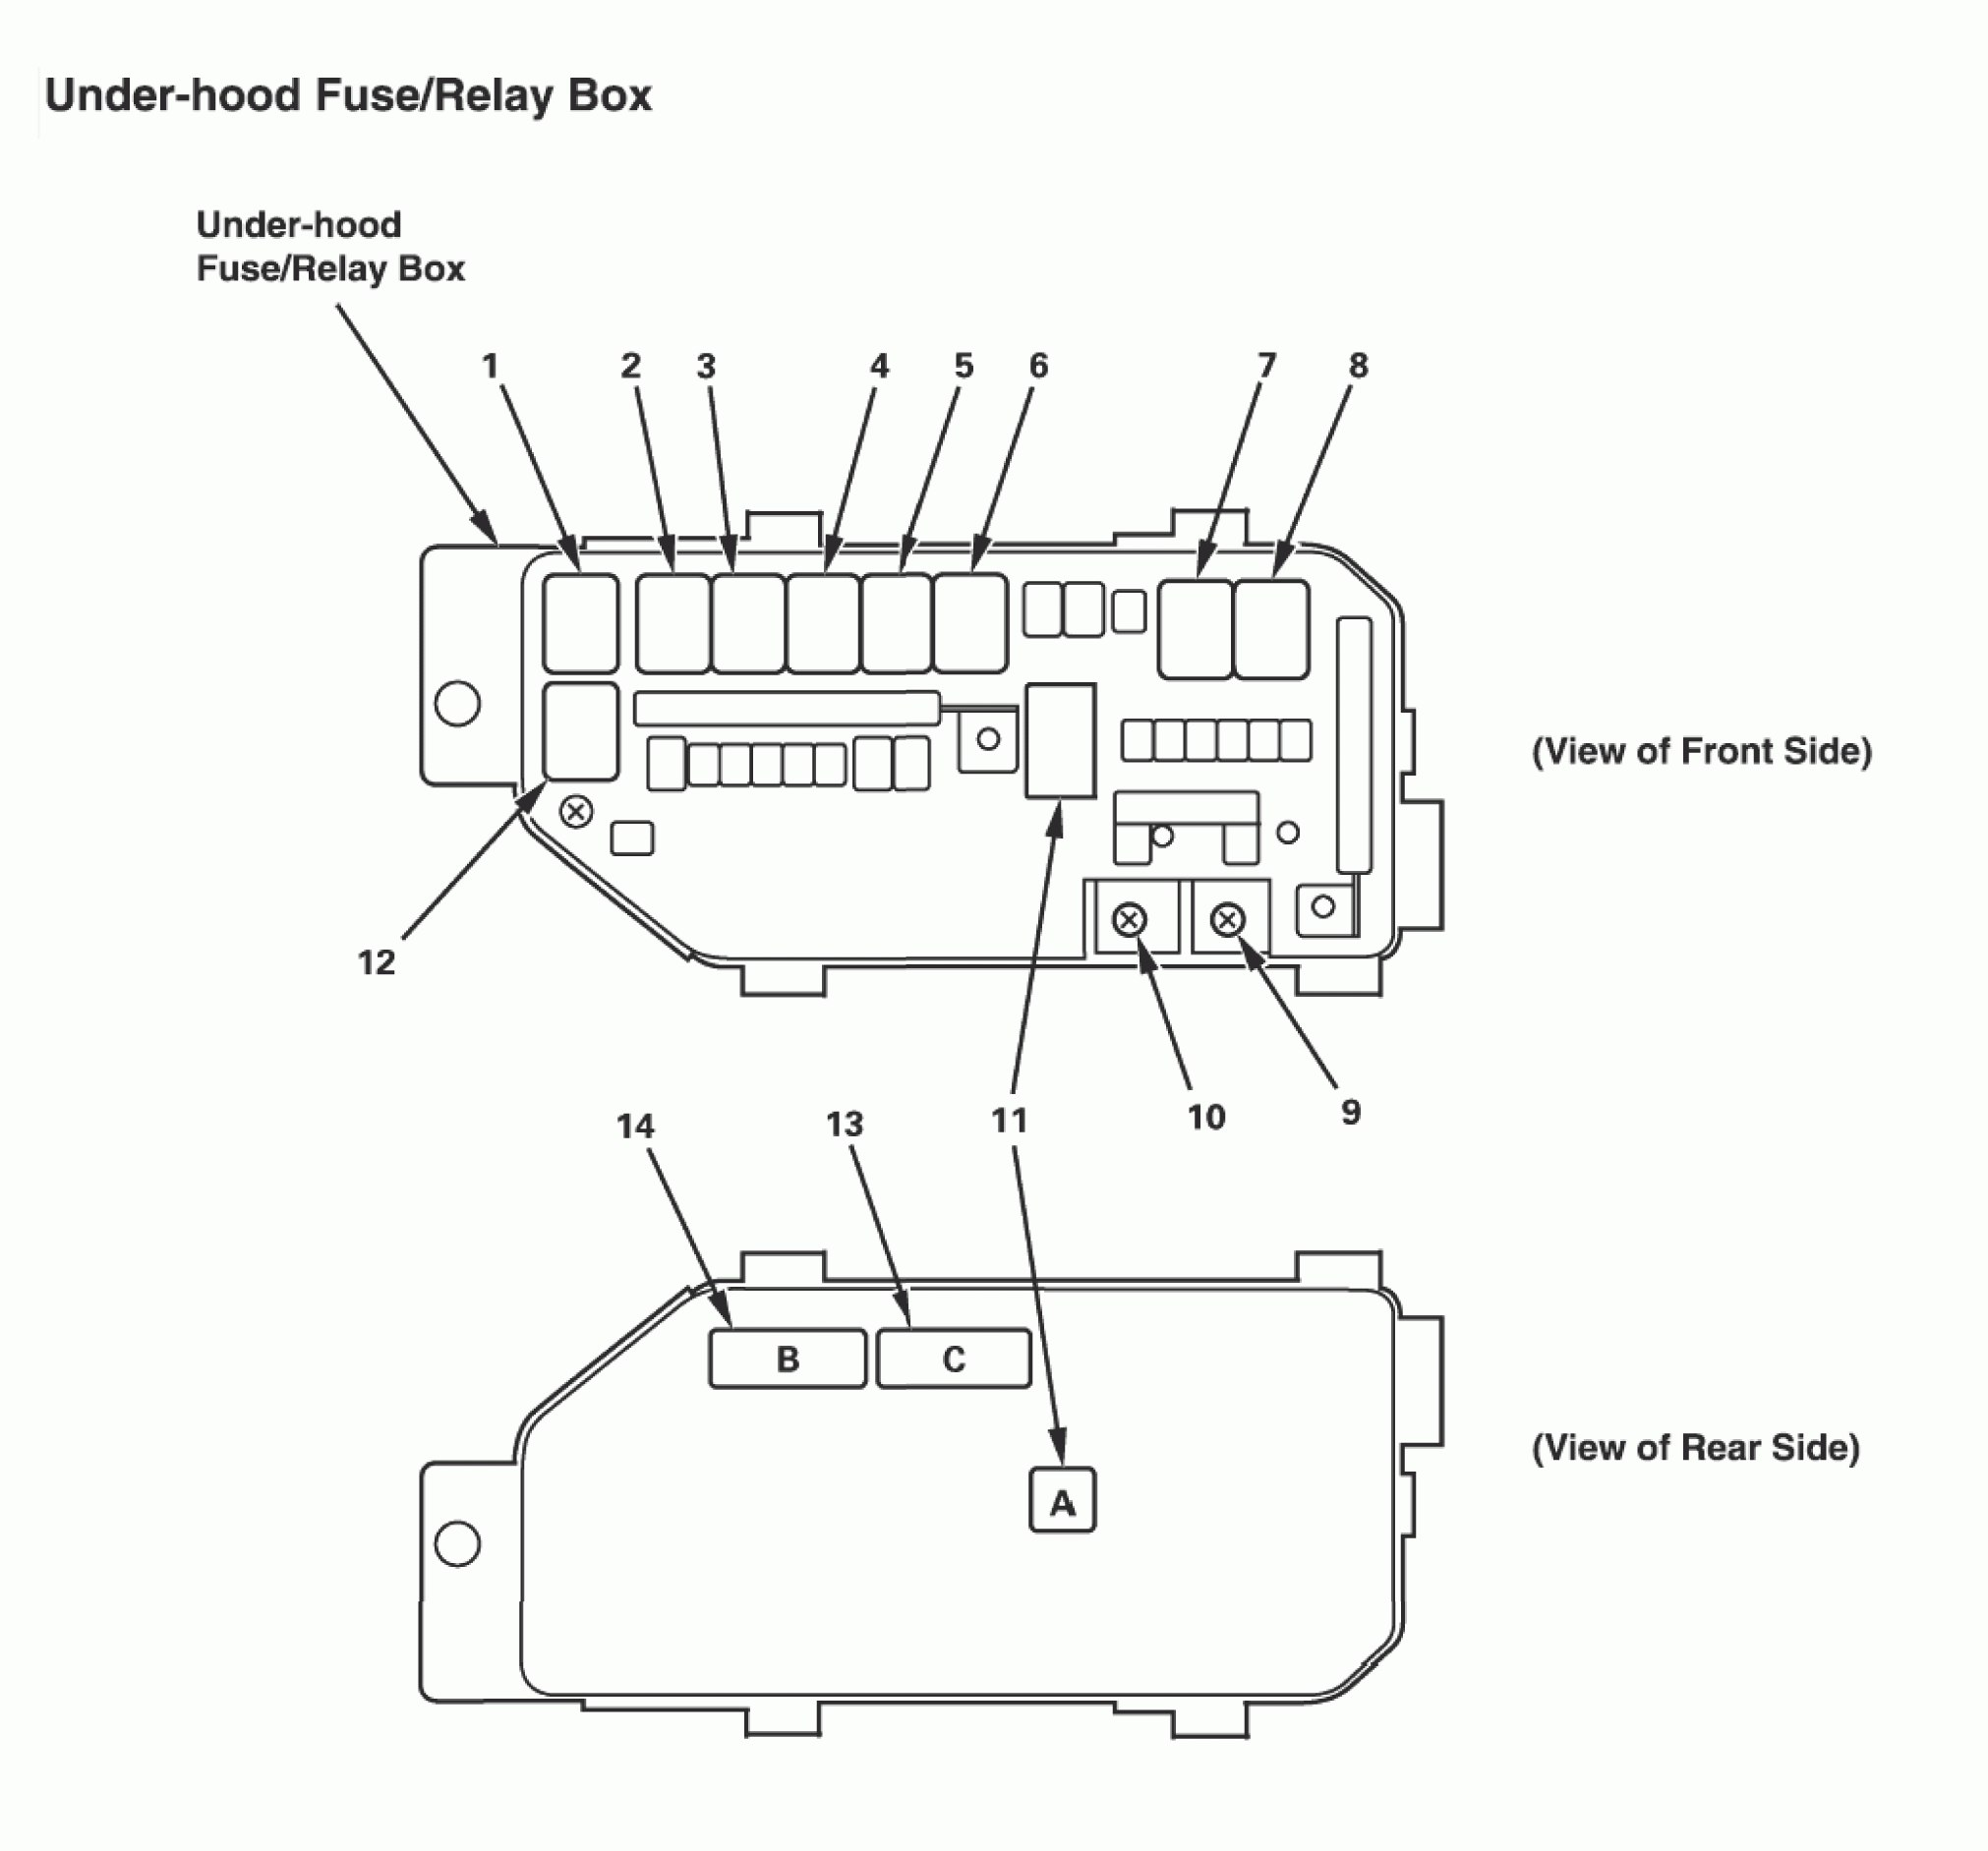 Acura Tl Wiring Diagram Fuse Box Under Hood on 06 pt cruiser fuel filter